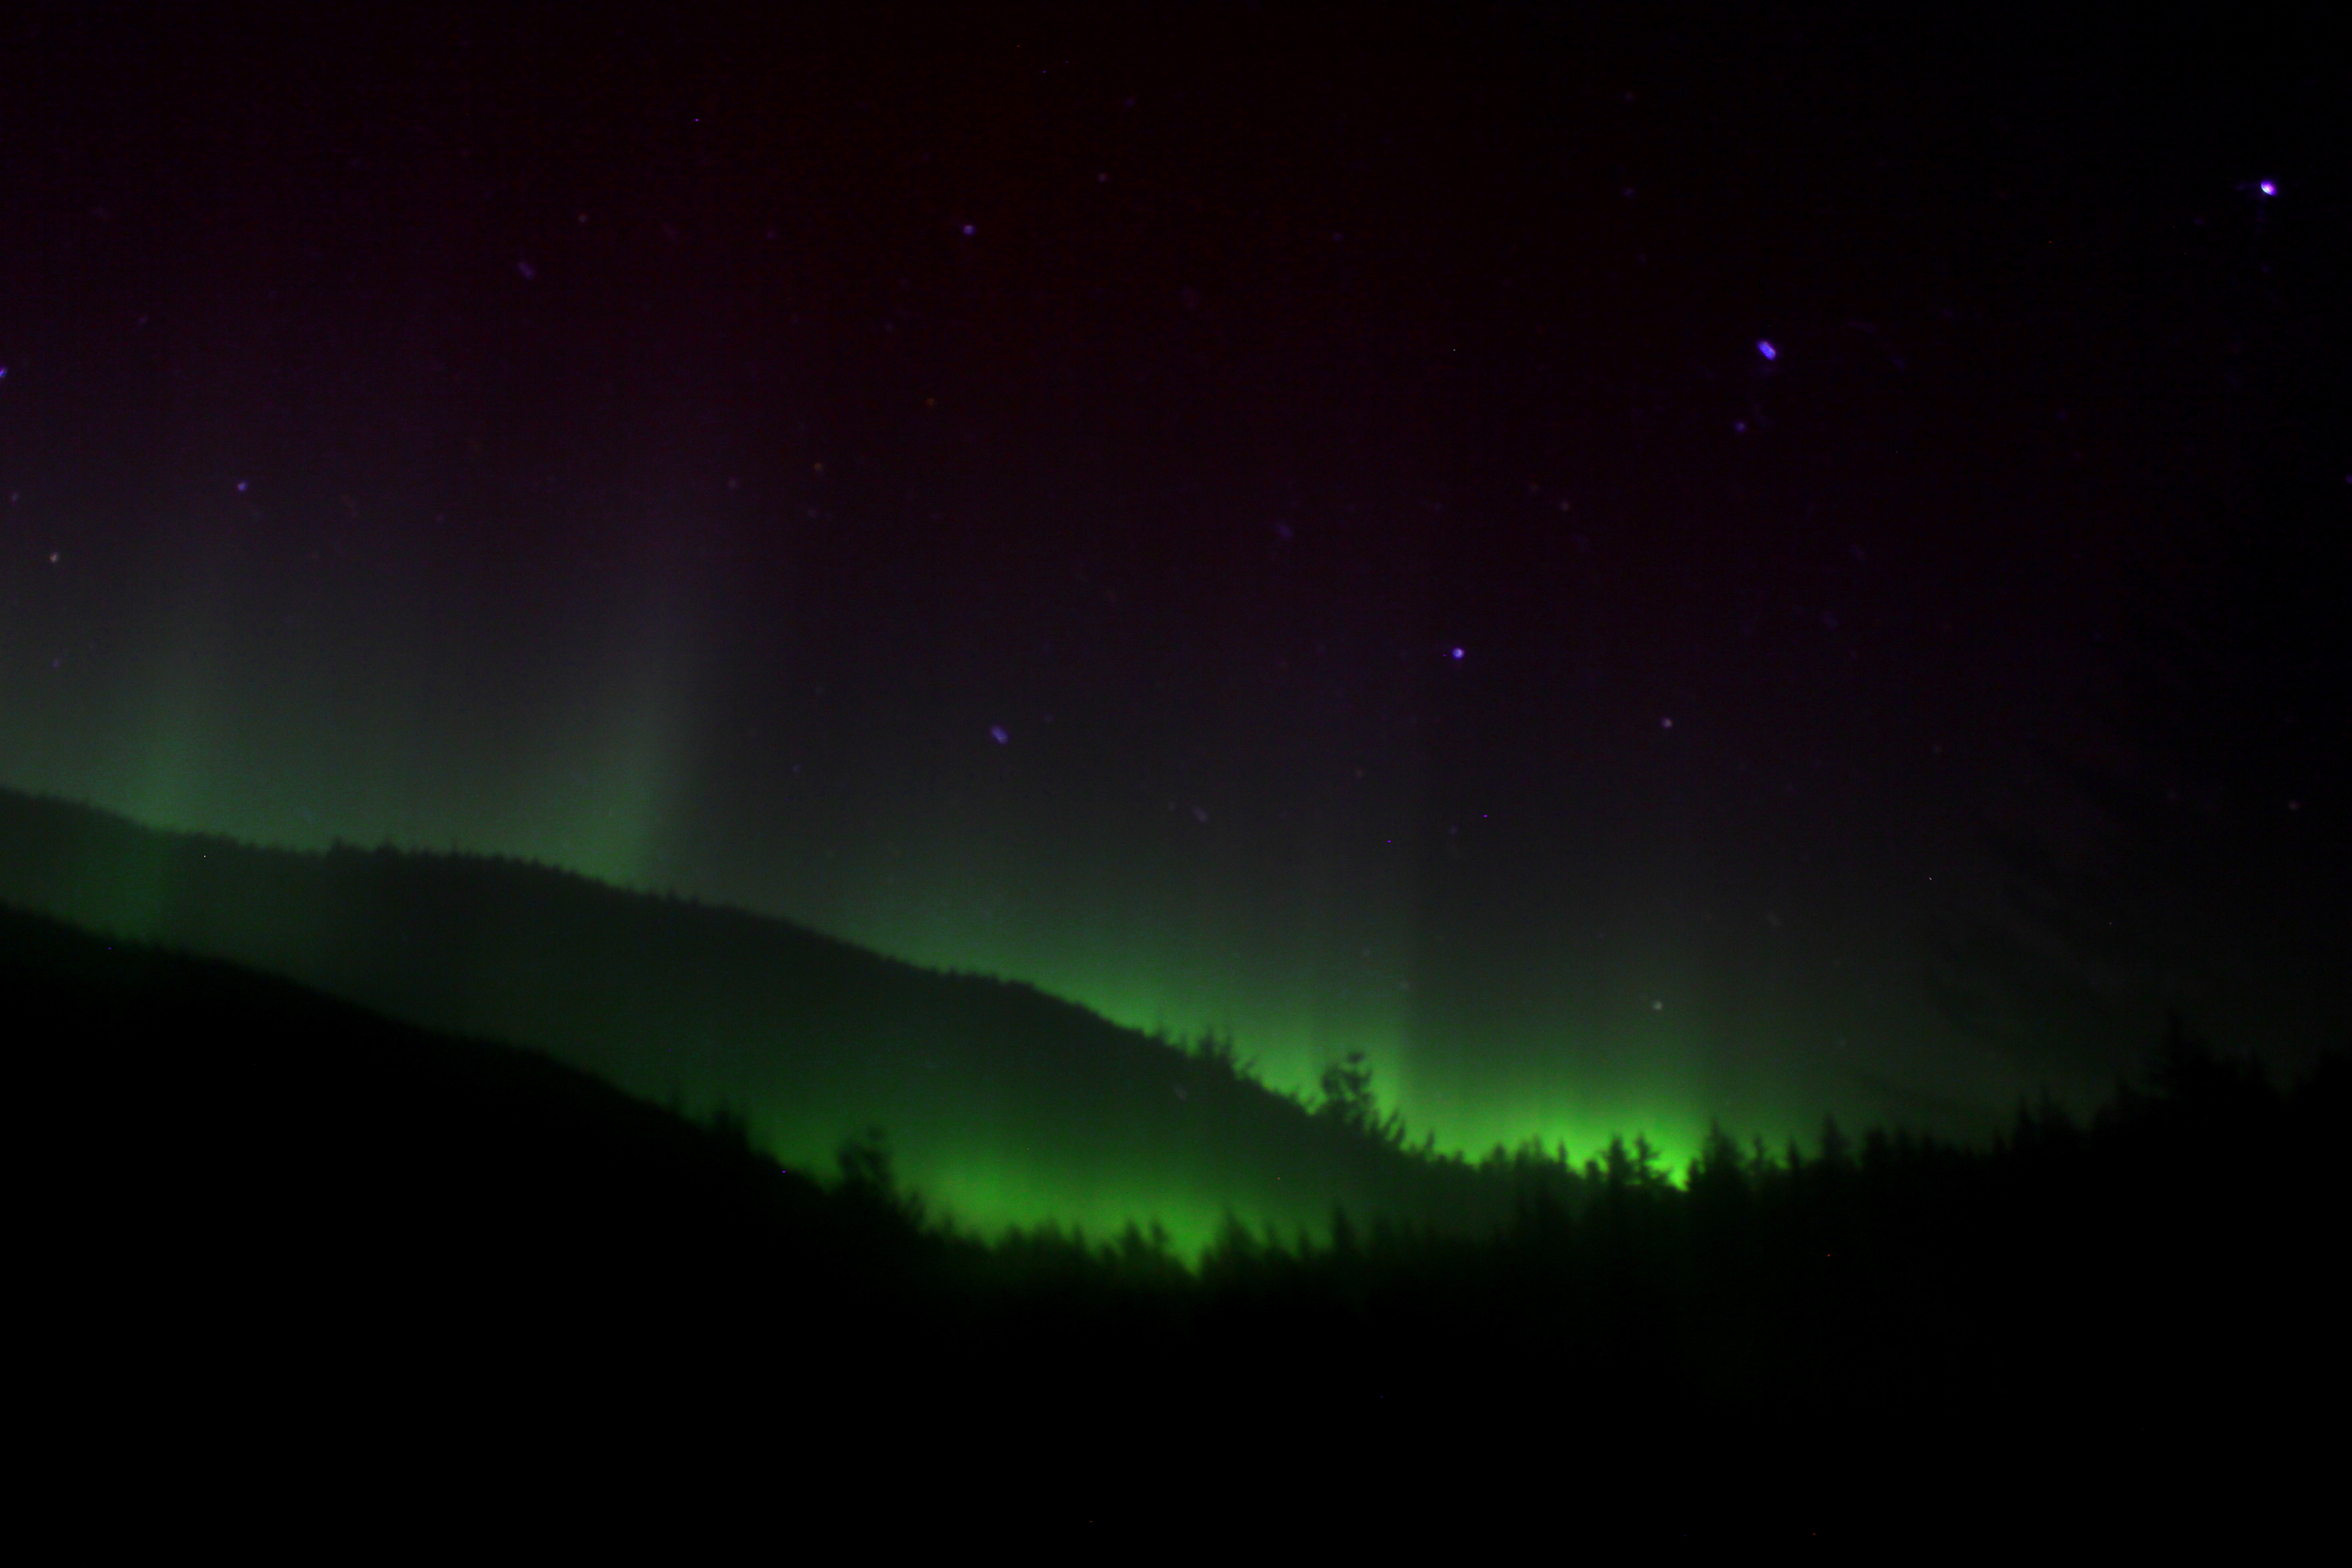 I accidentally bumped my tripod (a big no-no in aurora photography) - and the photo turned out looking like there were two rolling hills in the frame, each with the aurora floating above. Not a bad mistake if you ask me!